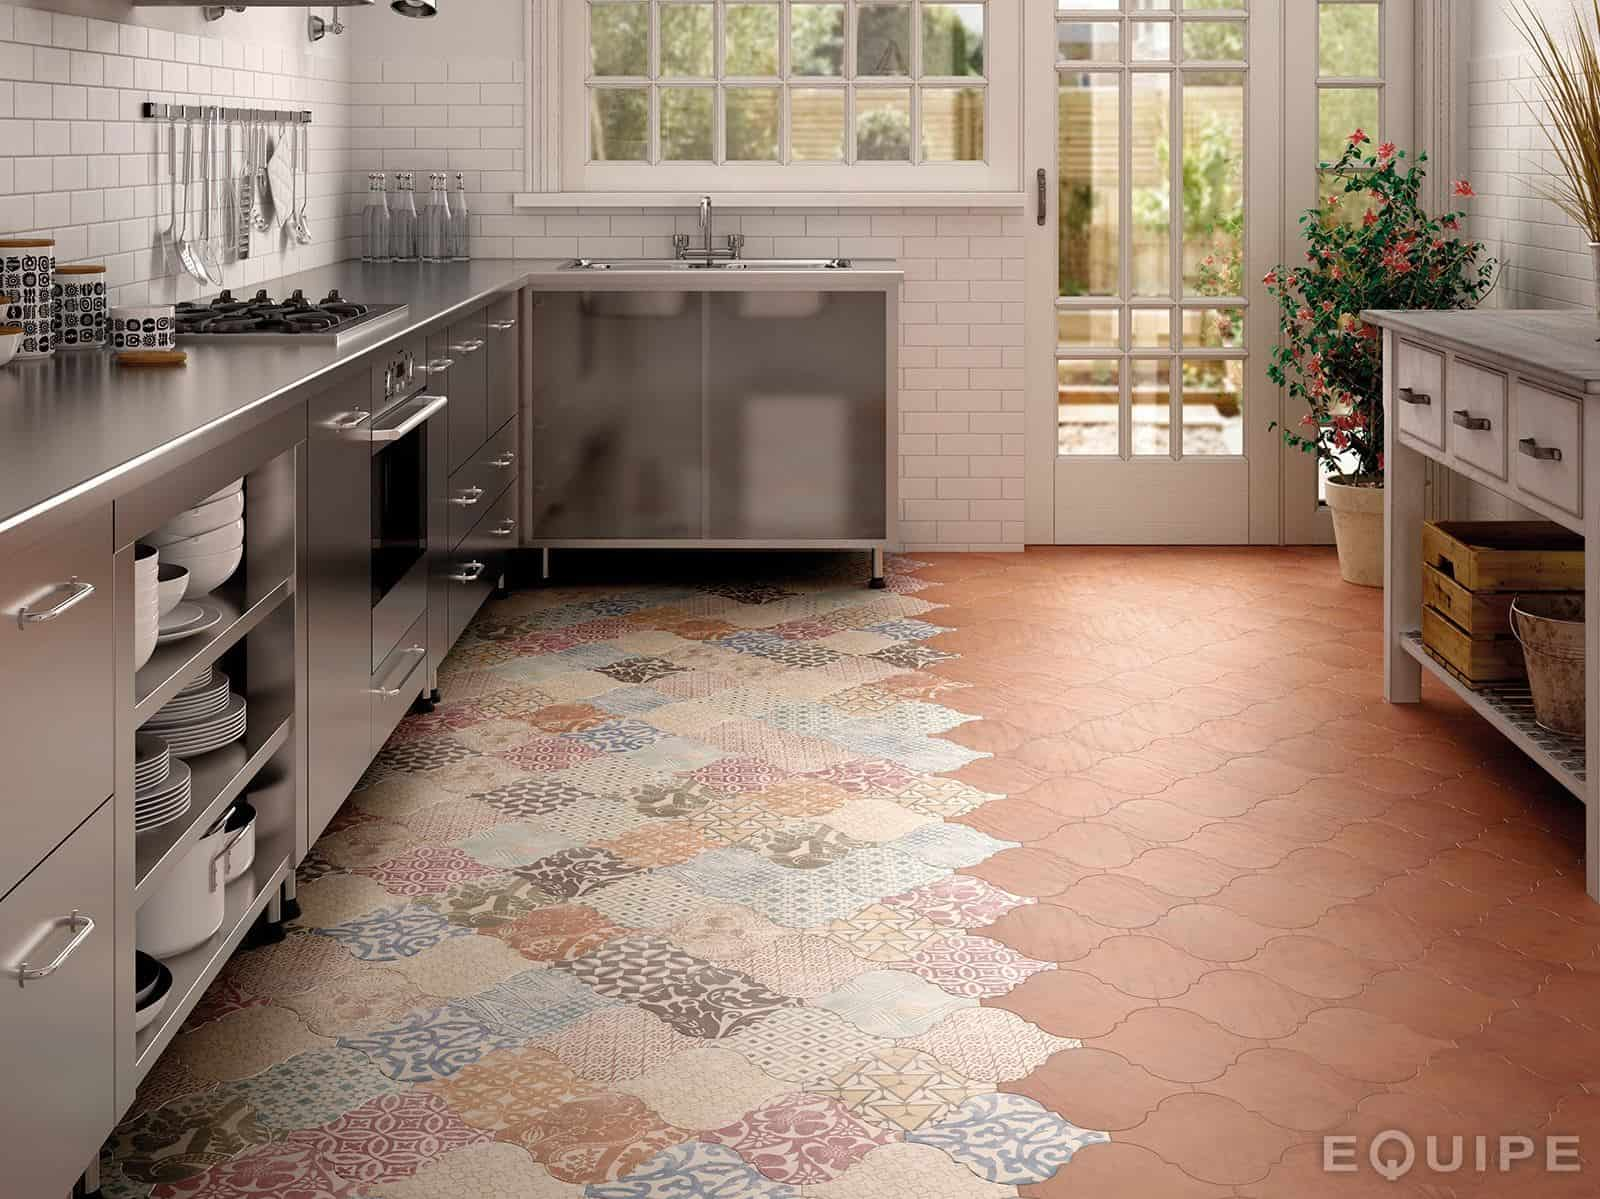 21 Arabesque Tile Ideas for Floor, Wall and Backsplash